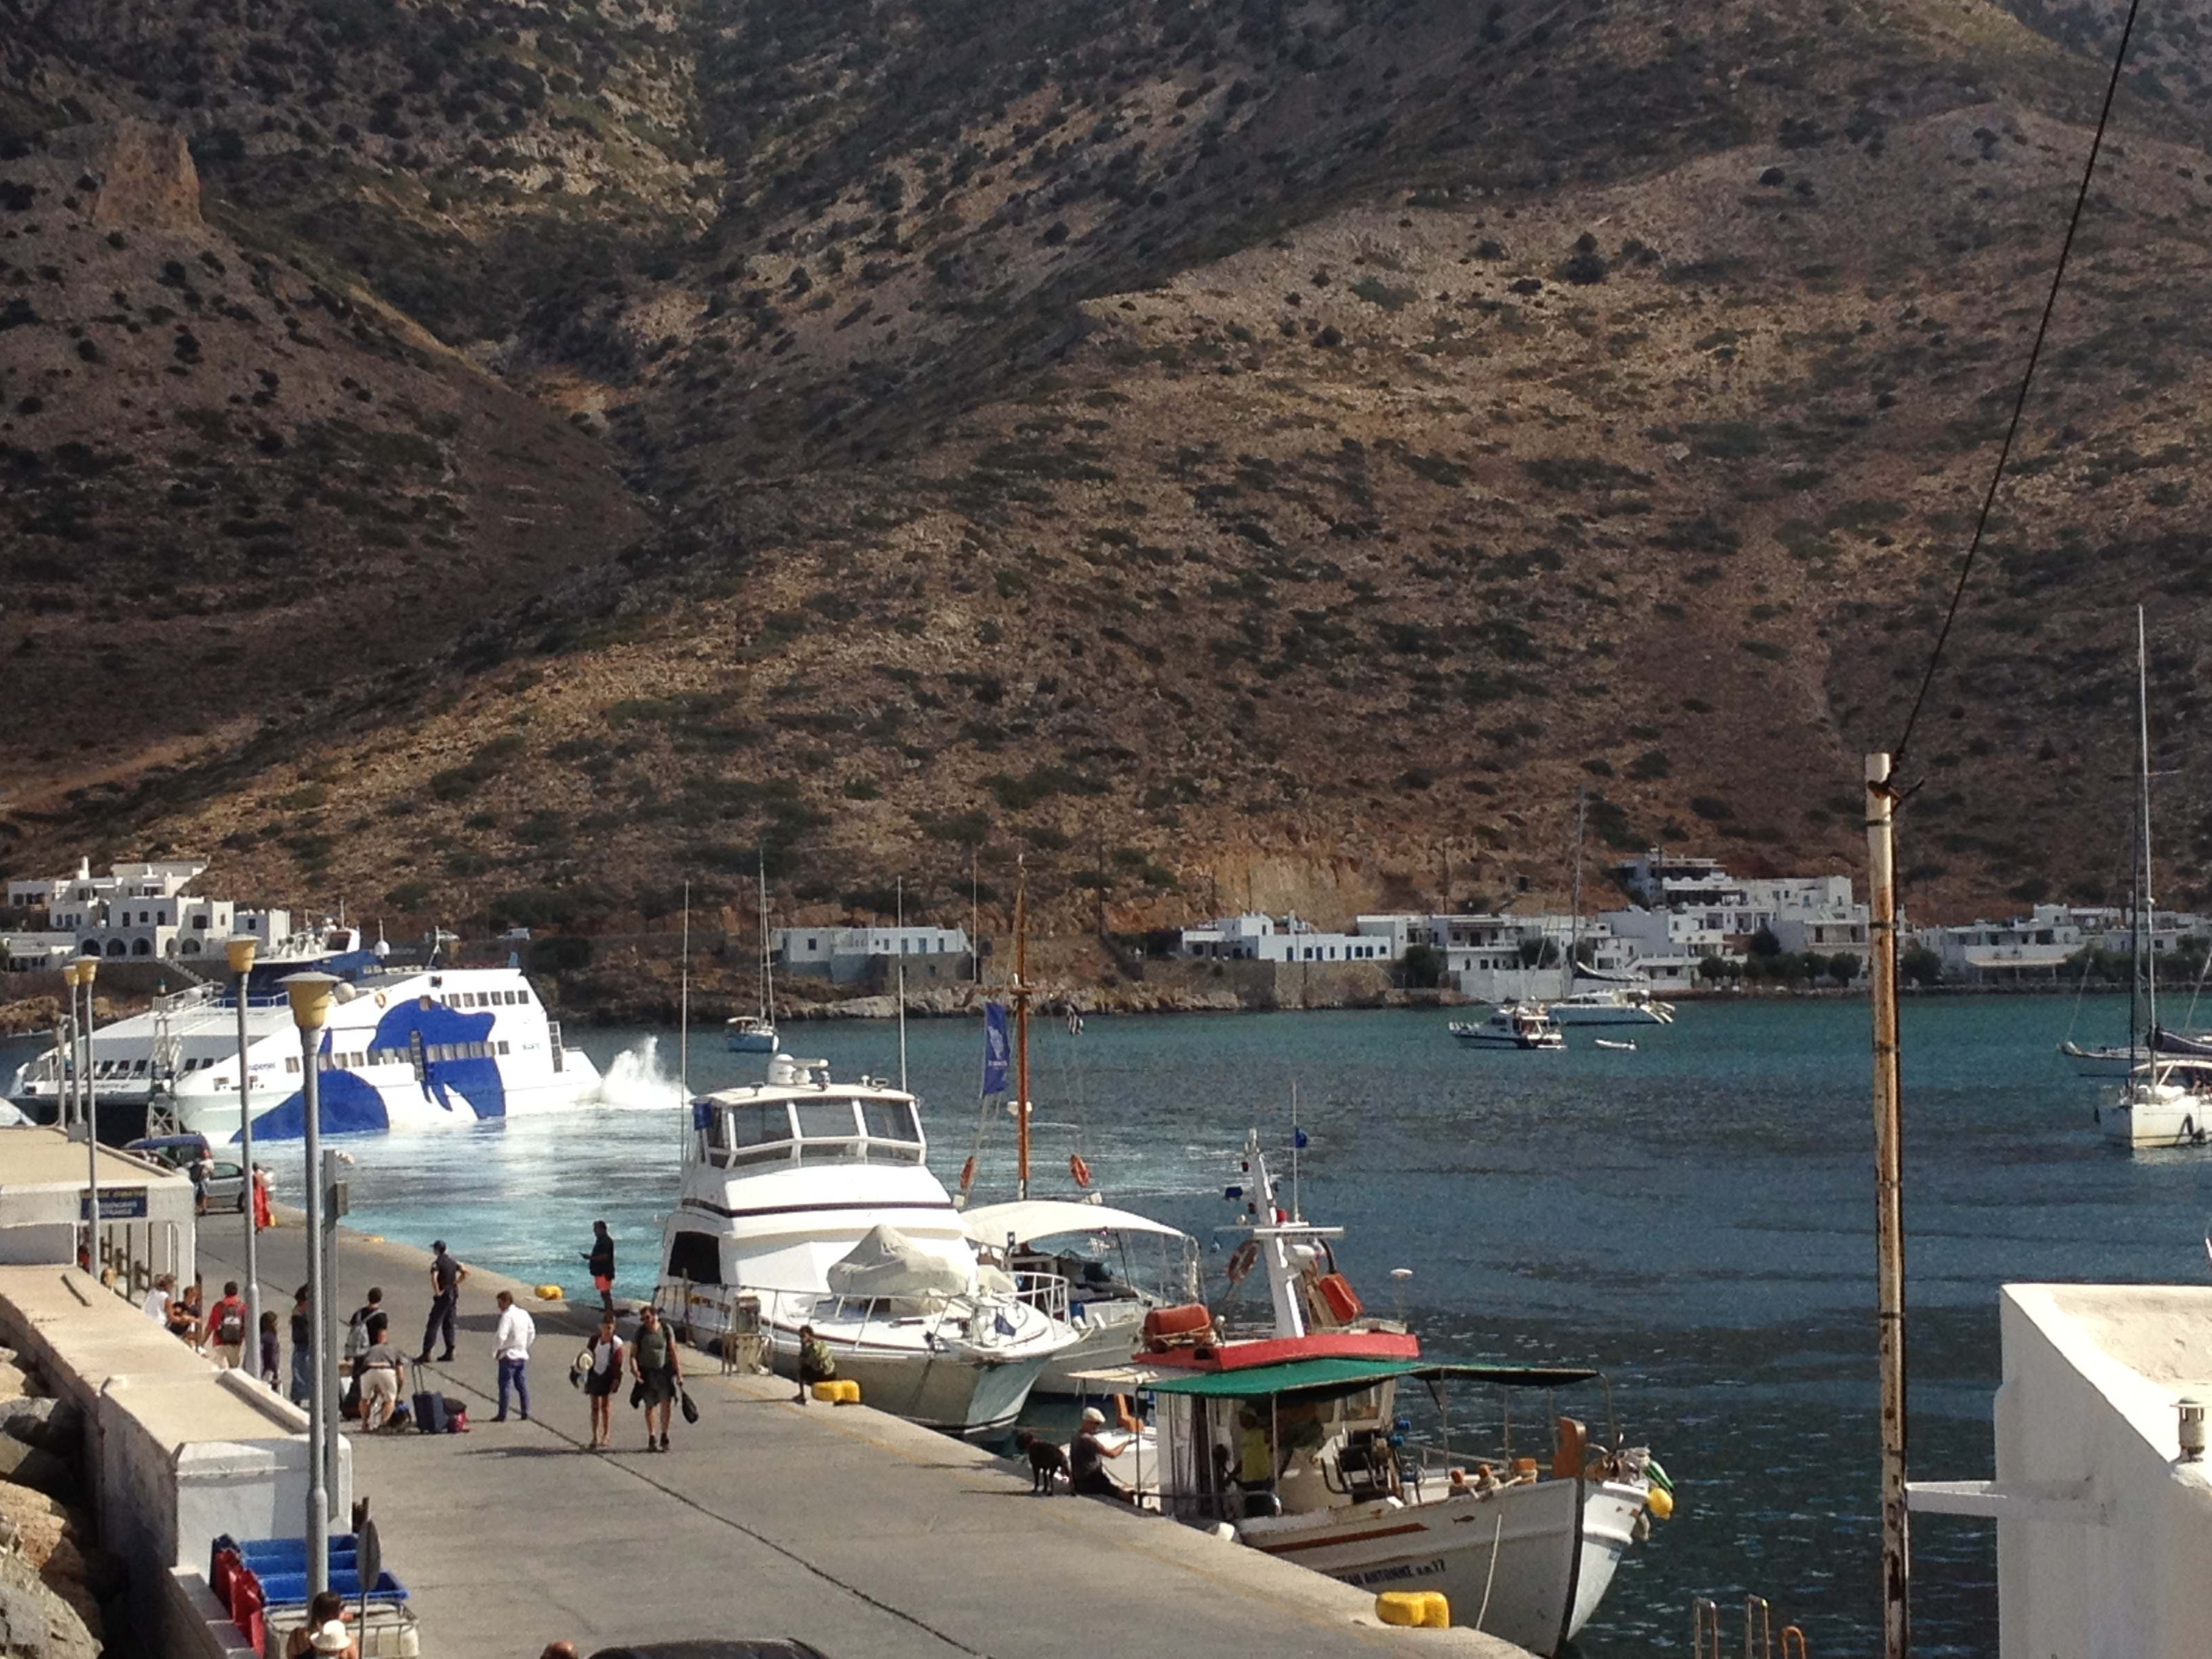 Sifnos Island - Sifnos is Tom Hanks' favorite - Kamares port